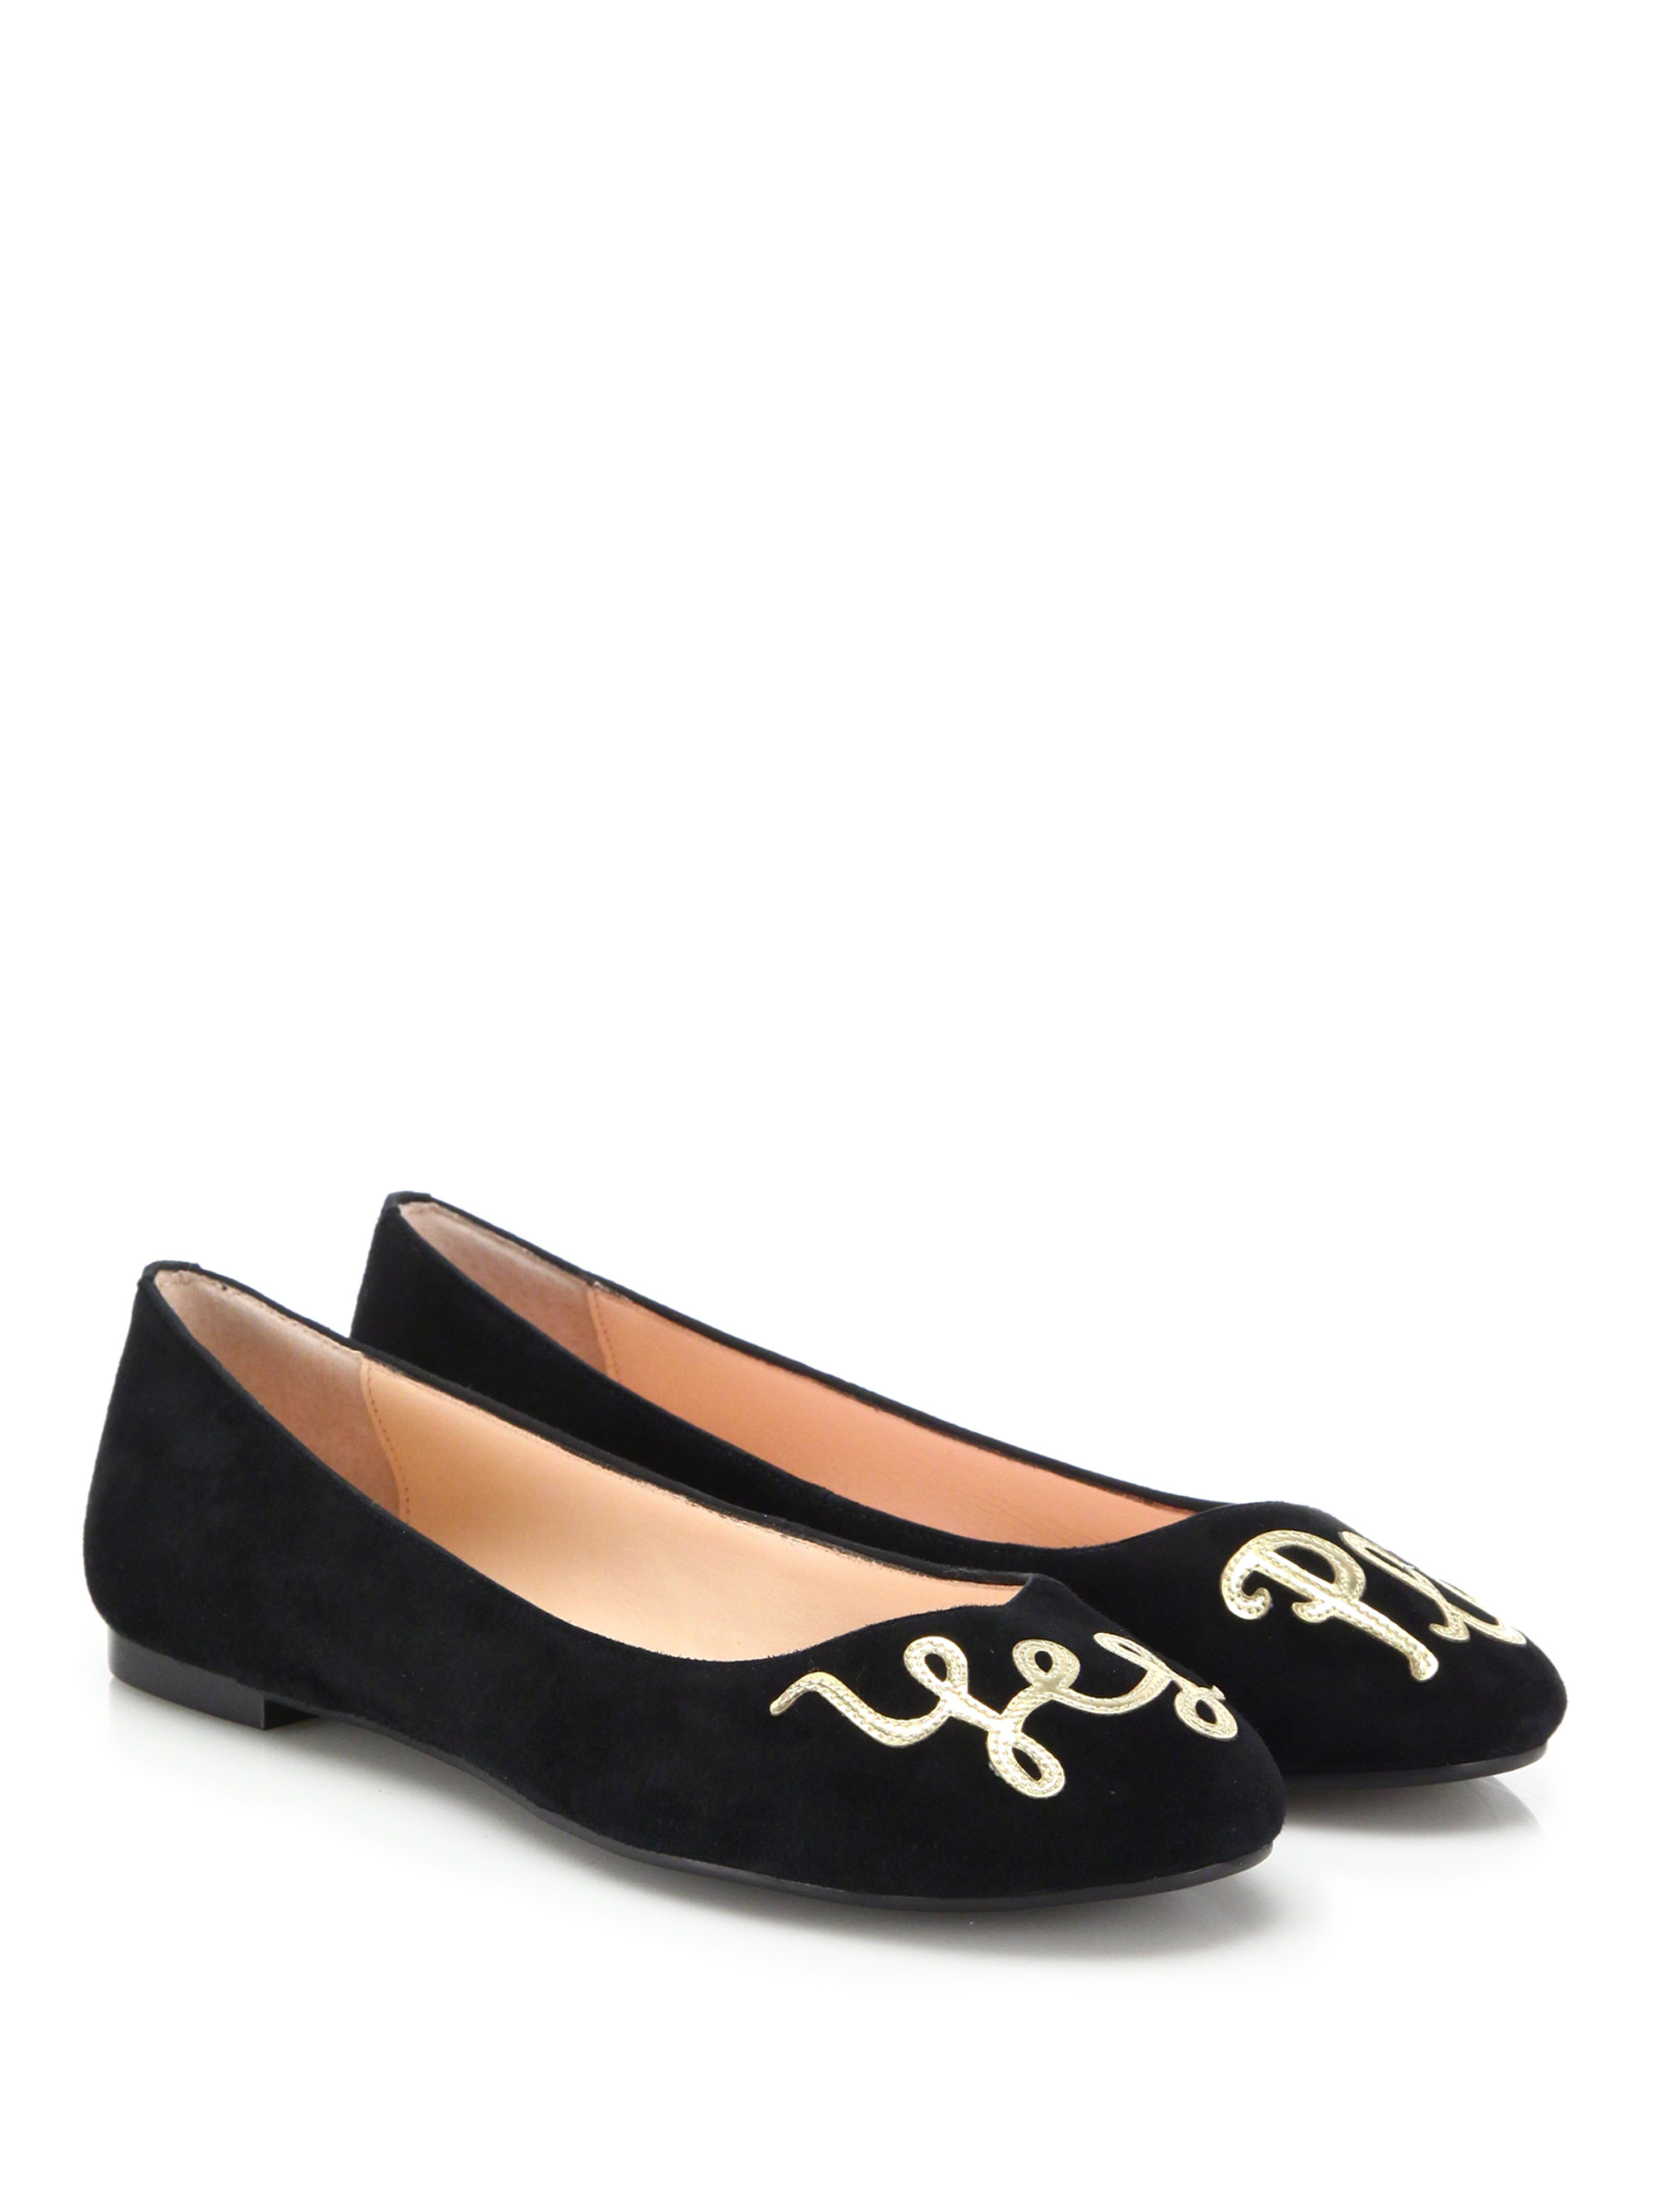 Lyst Kate Spade New York Embroidered Suede Flats In Black